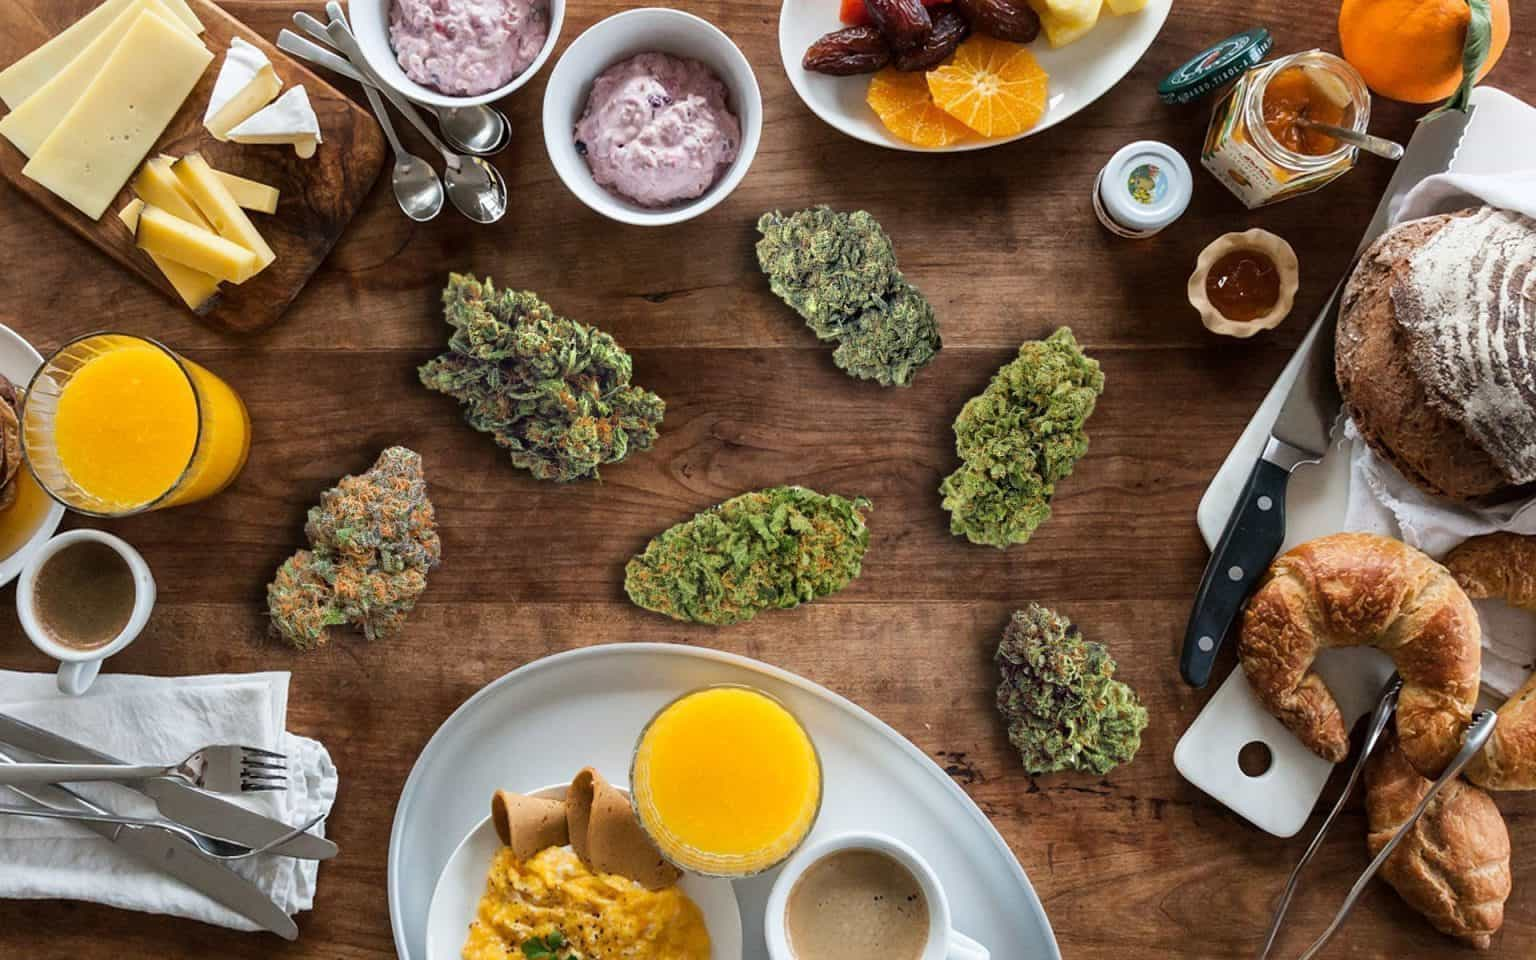 The Best Cannabis and Food Pairings